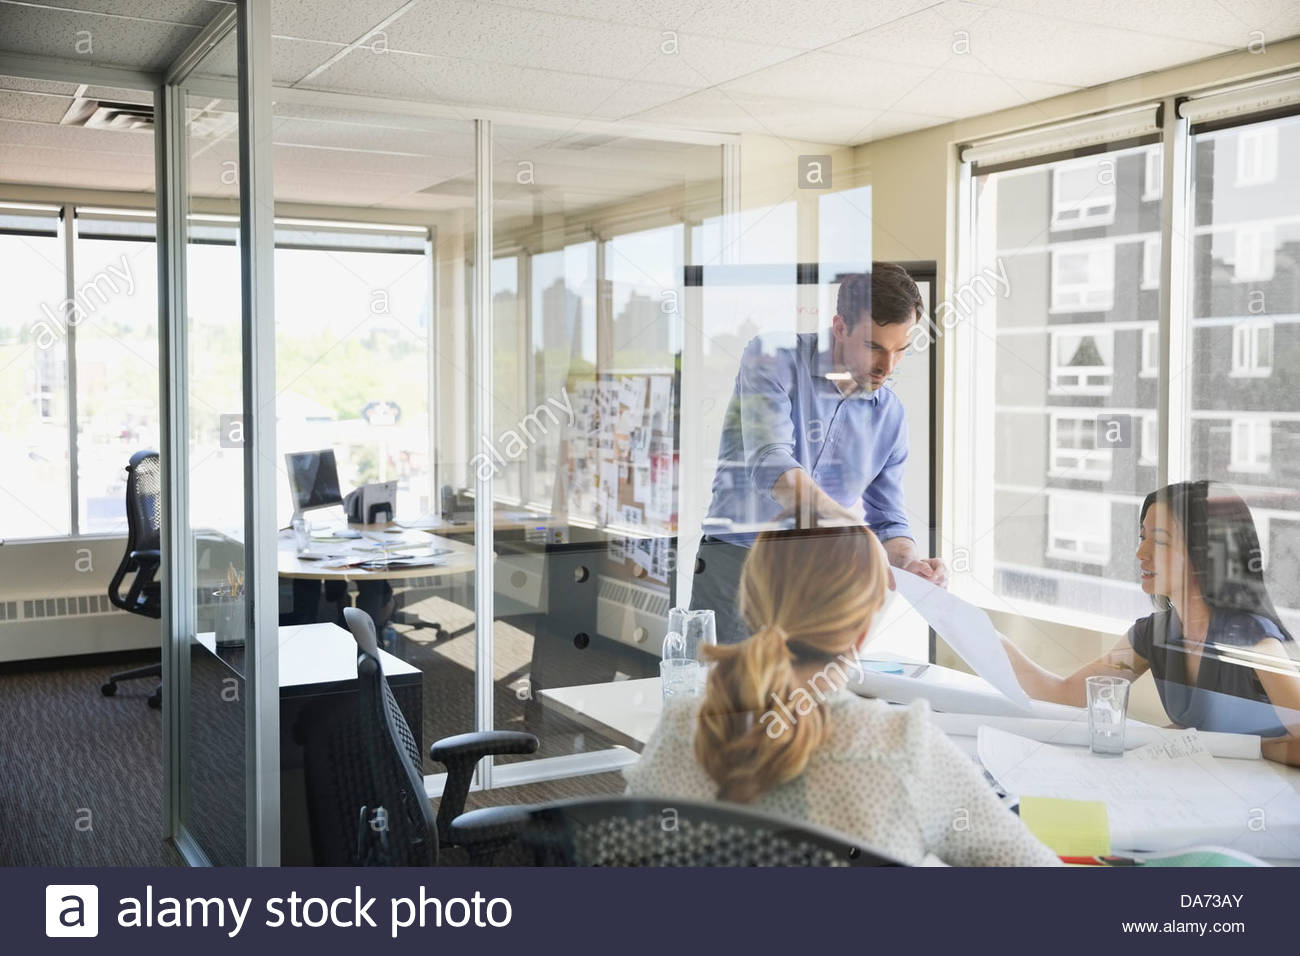 Business people working on project at desk in office - Stock Image